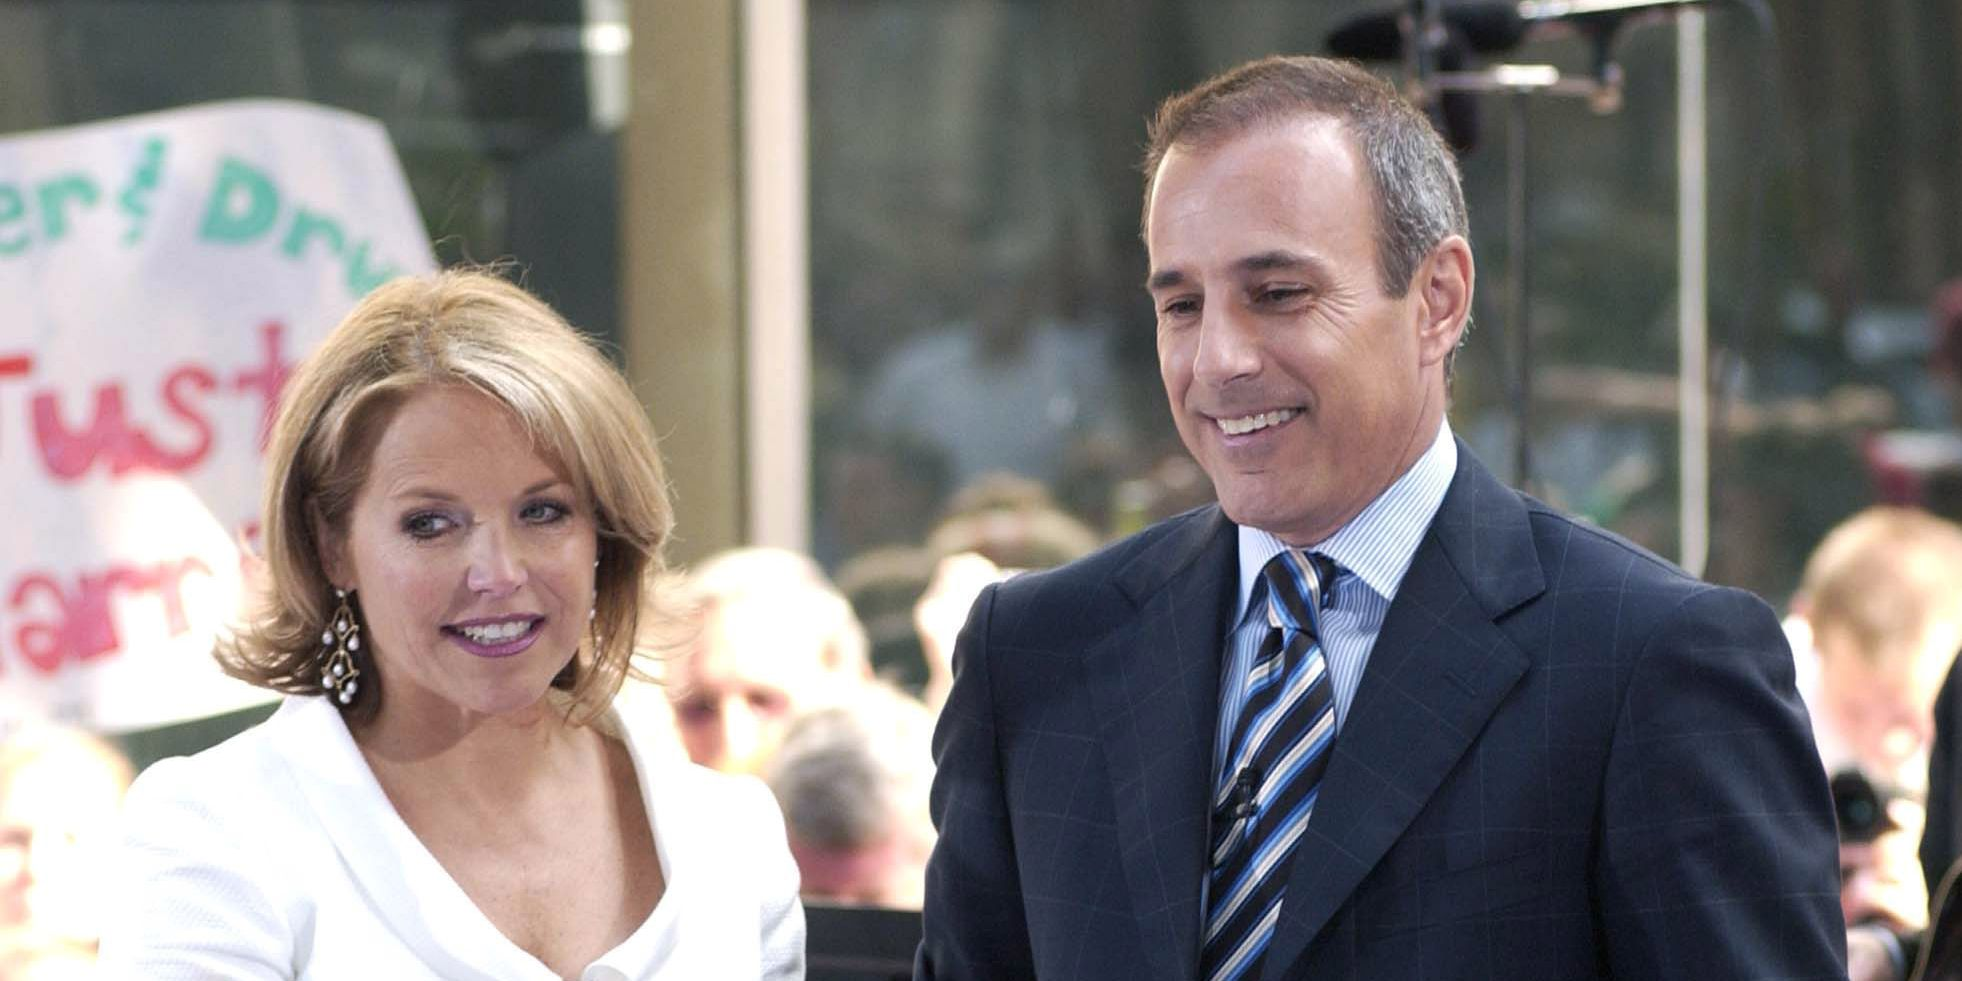 Katie Couric Broke Her Silence About Matt Lauer's Sexual Misconduct Allegations